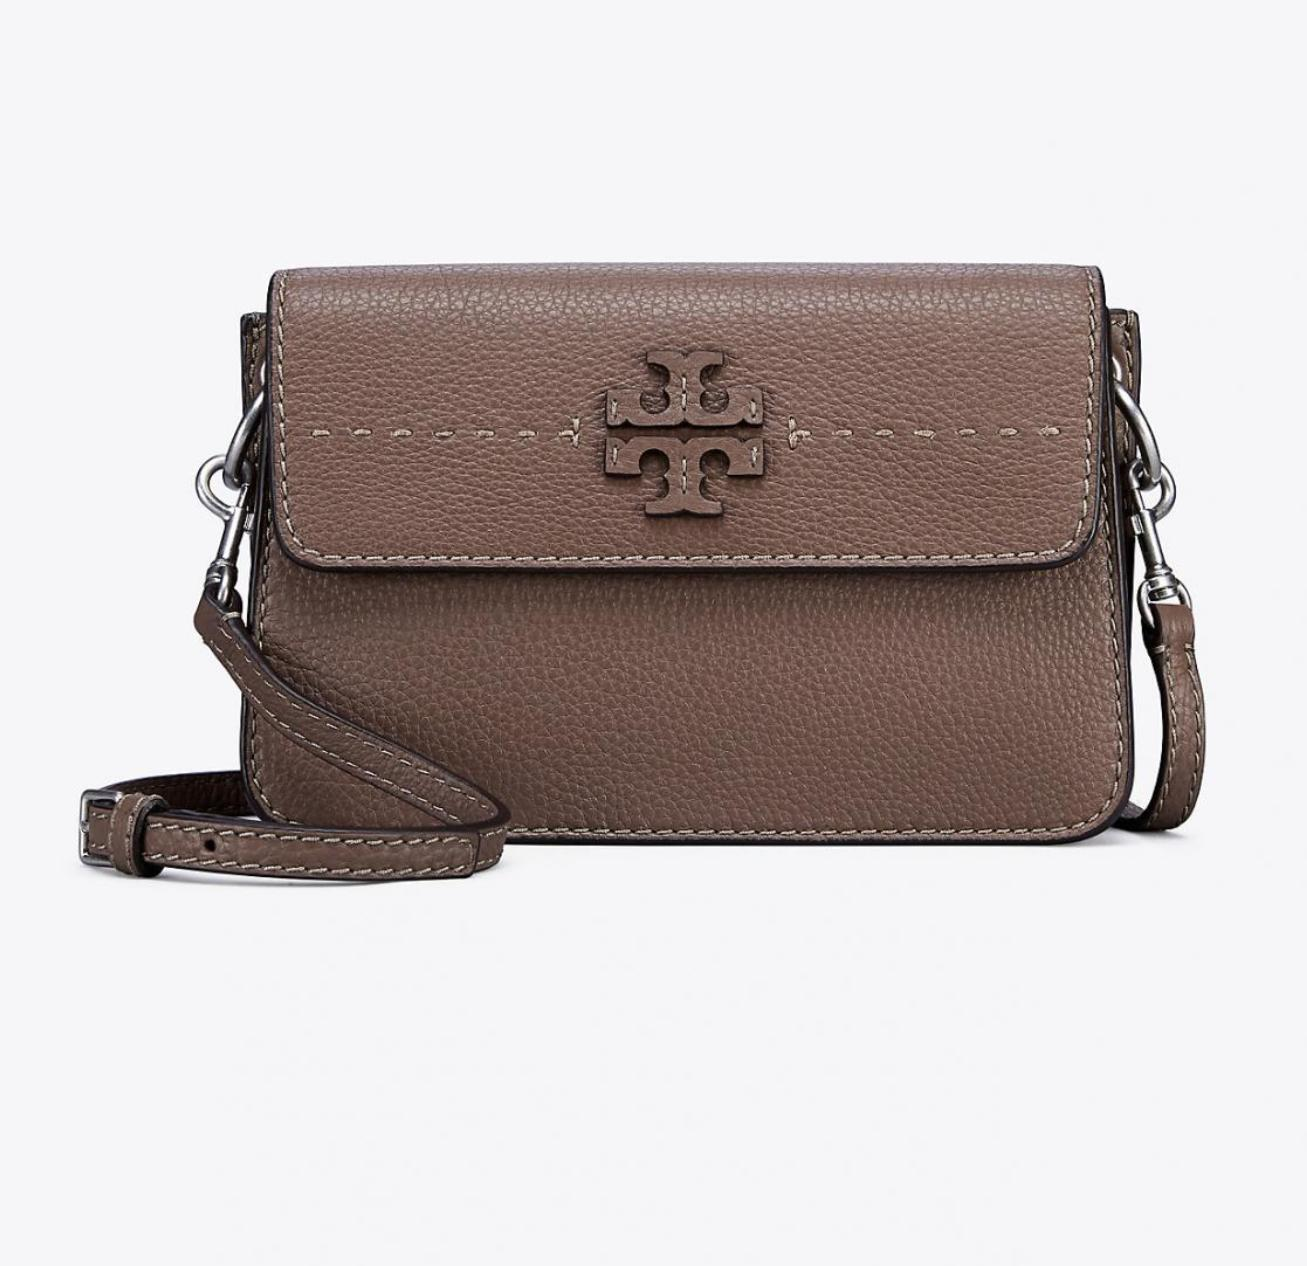 Tory Burch Mcgraw Cross Body